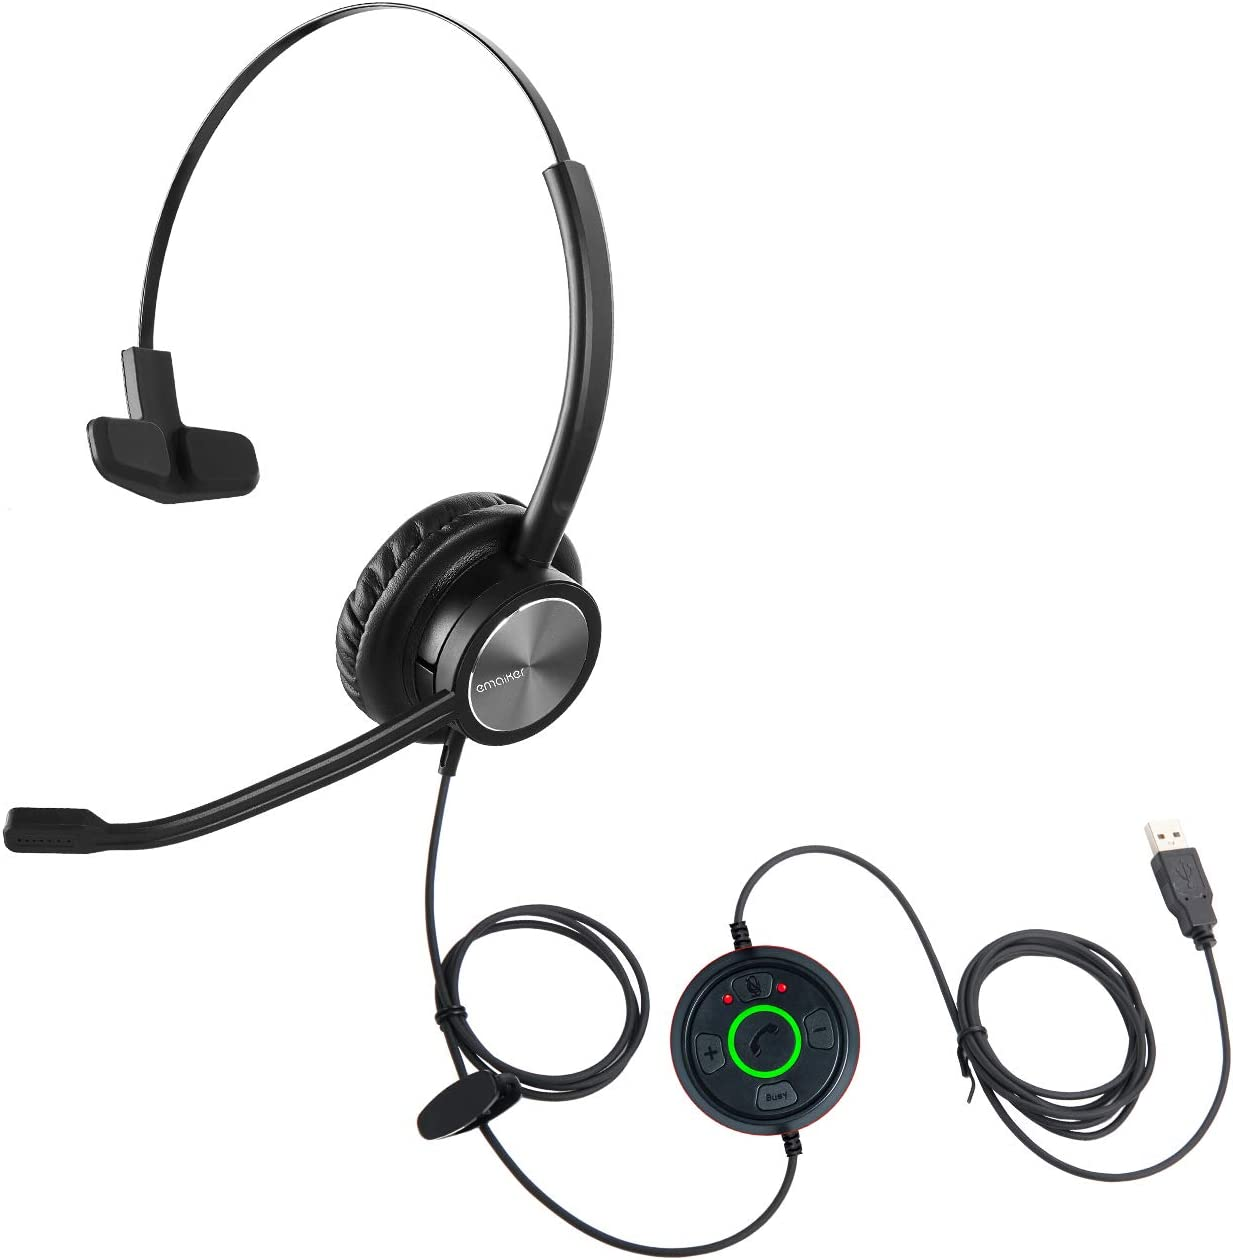 Emaiker One Ear USB Headset with Mic Microphone for Special price Laptop PC 5 ☆ popular Mu